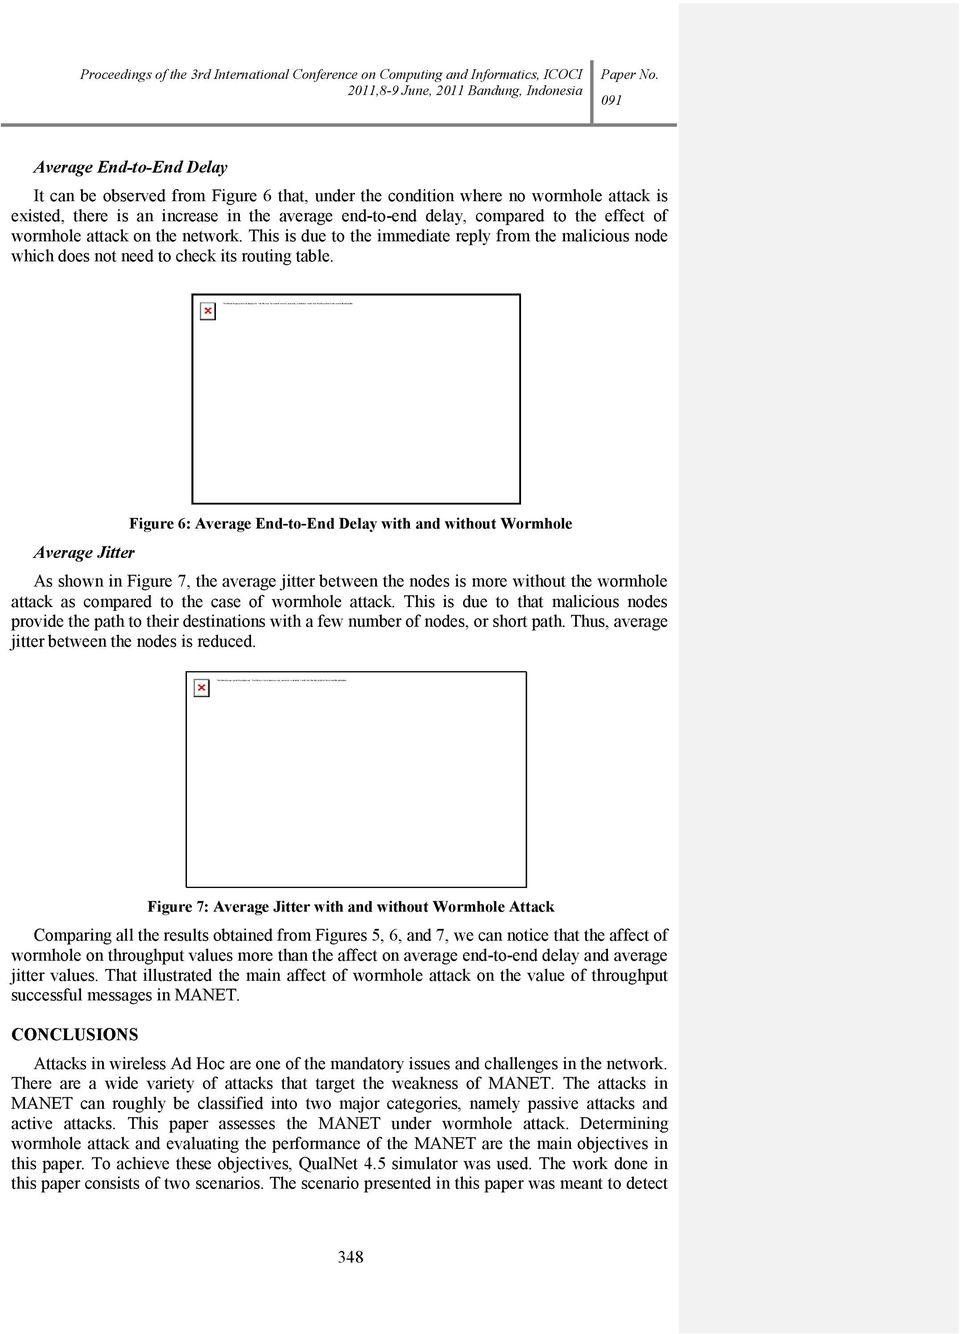 Mtech Thesis In Computer Science+Wormhole Attack